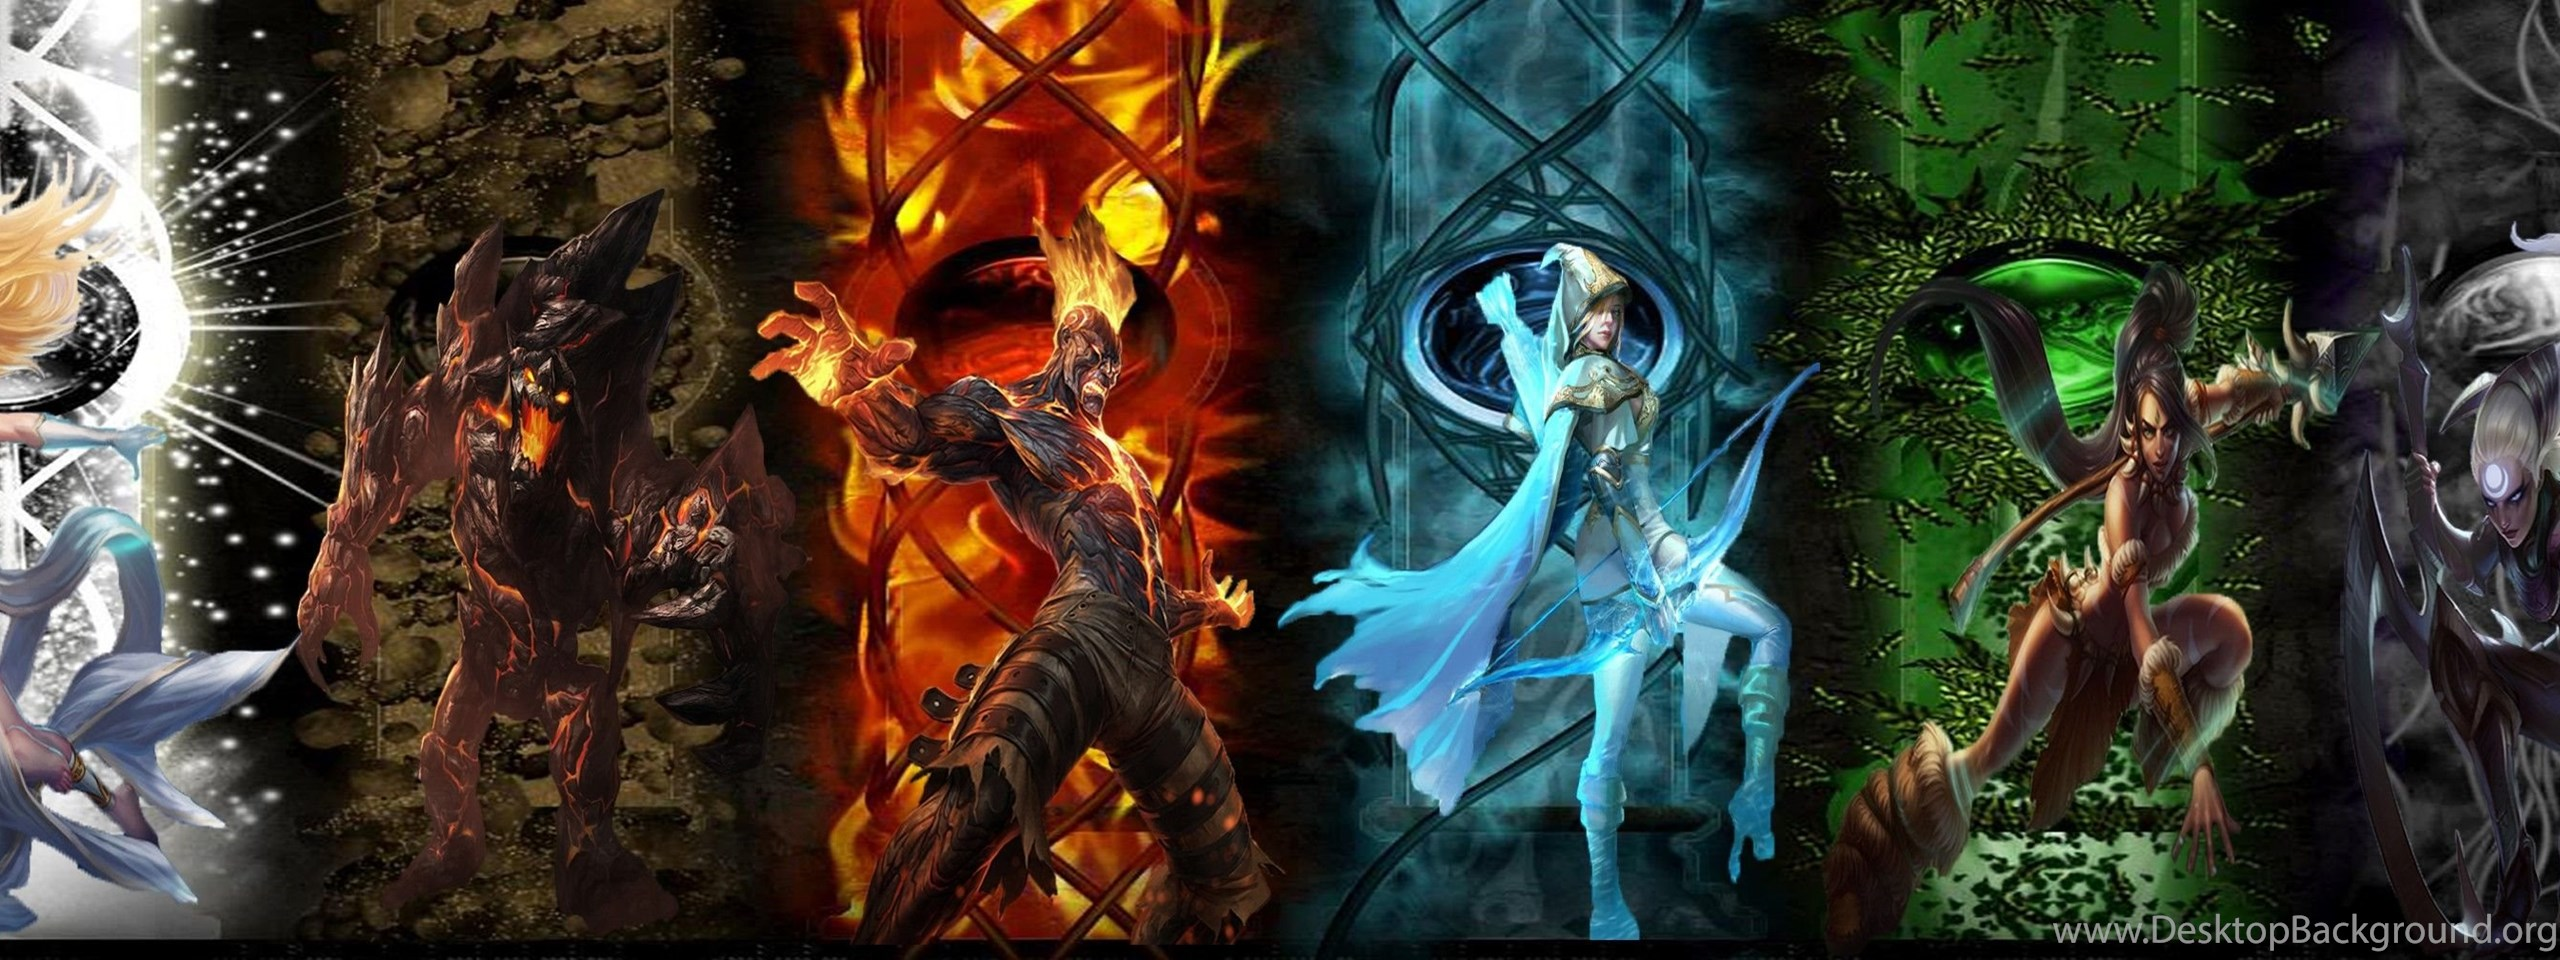 Dual Monitor Wallpaper League Of Legends: League Of Legends Wallpaperleague Of Legends Elemental